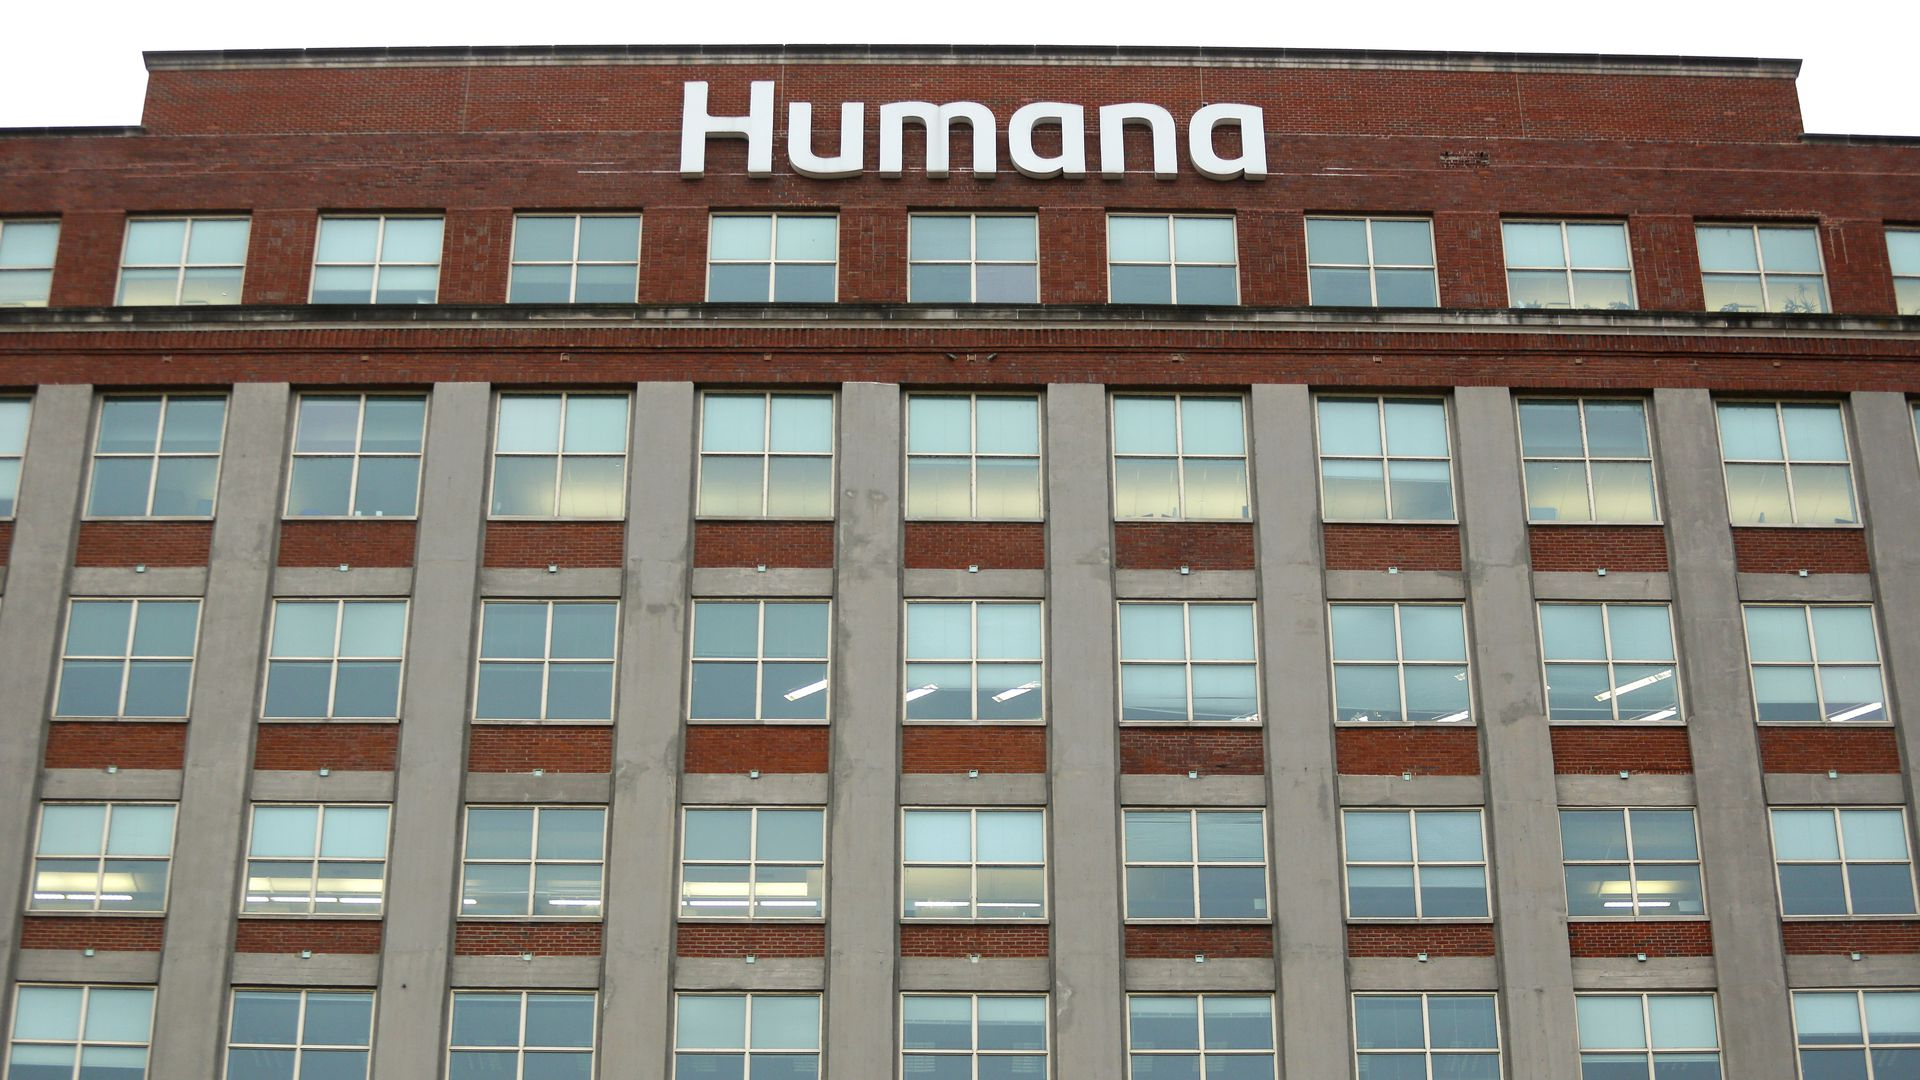 Humana's office building